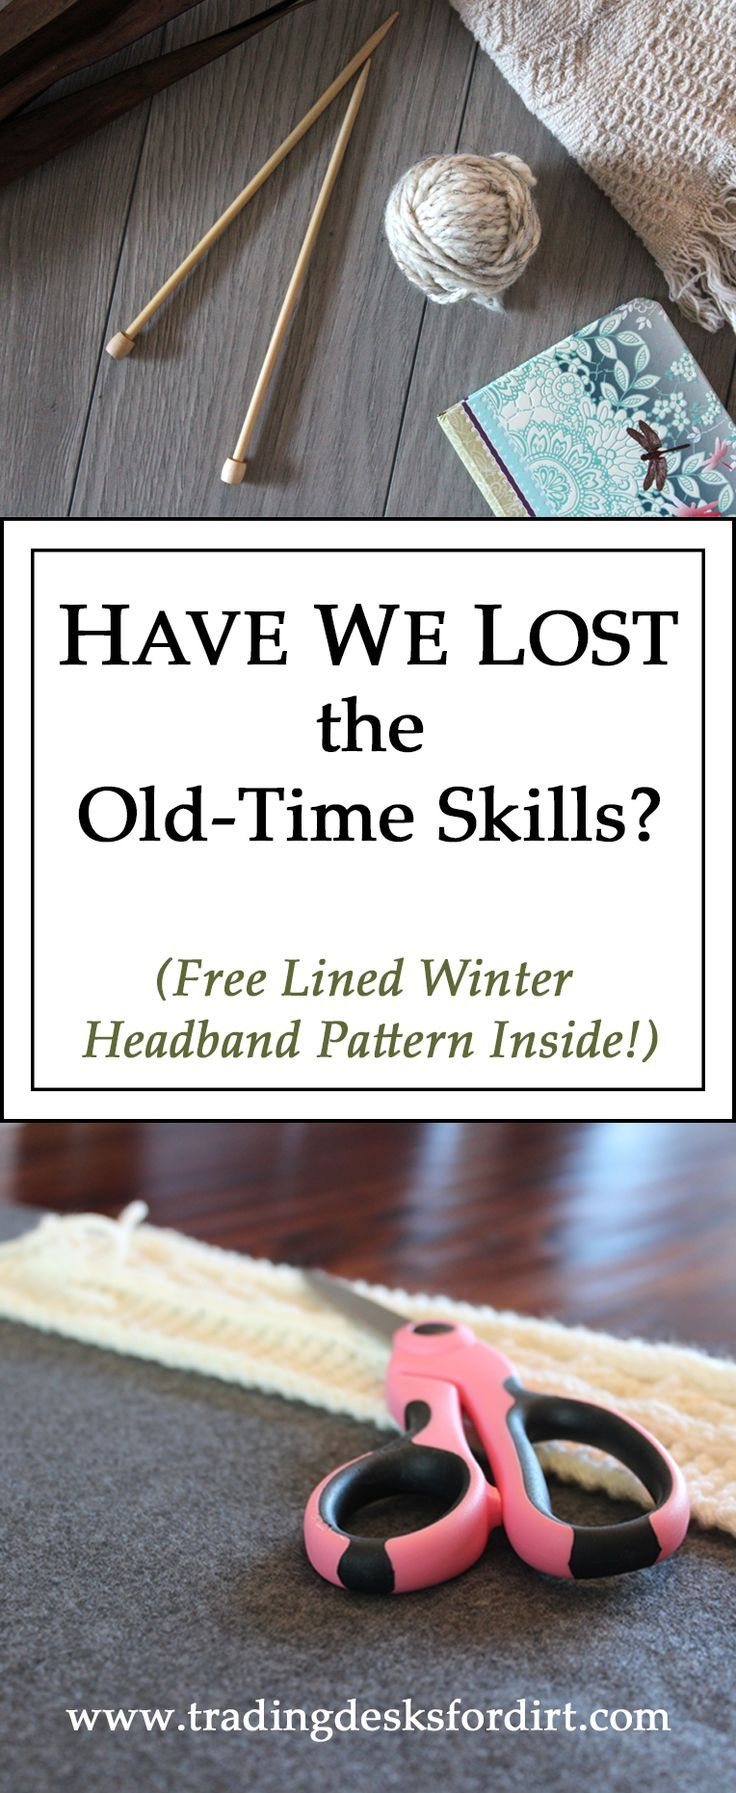 Have We Lost the Old-Time Skills? (Free Knitting Pattern Inside